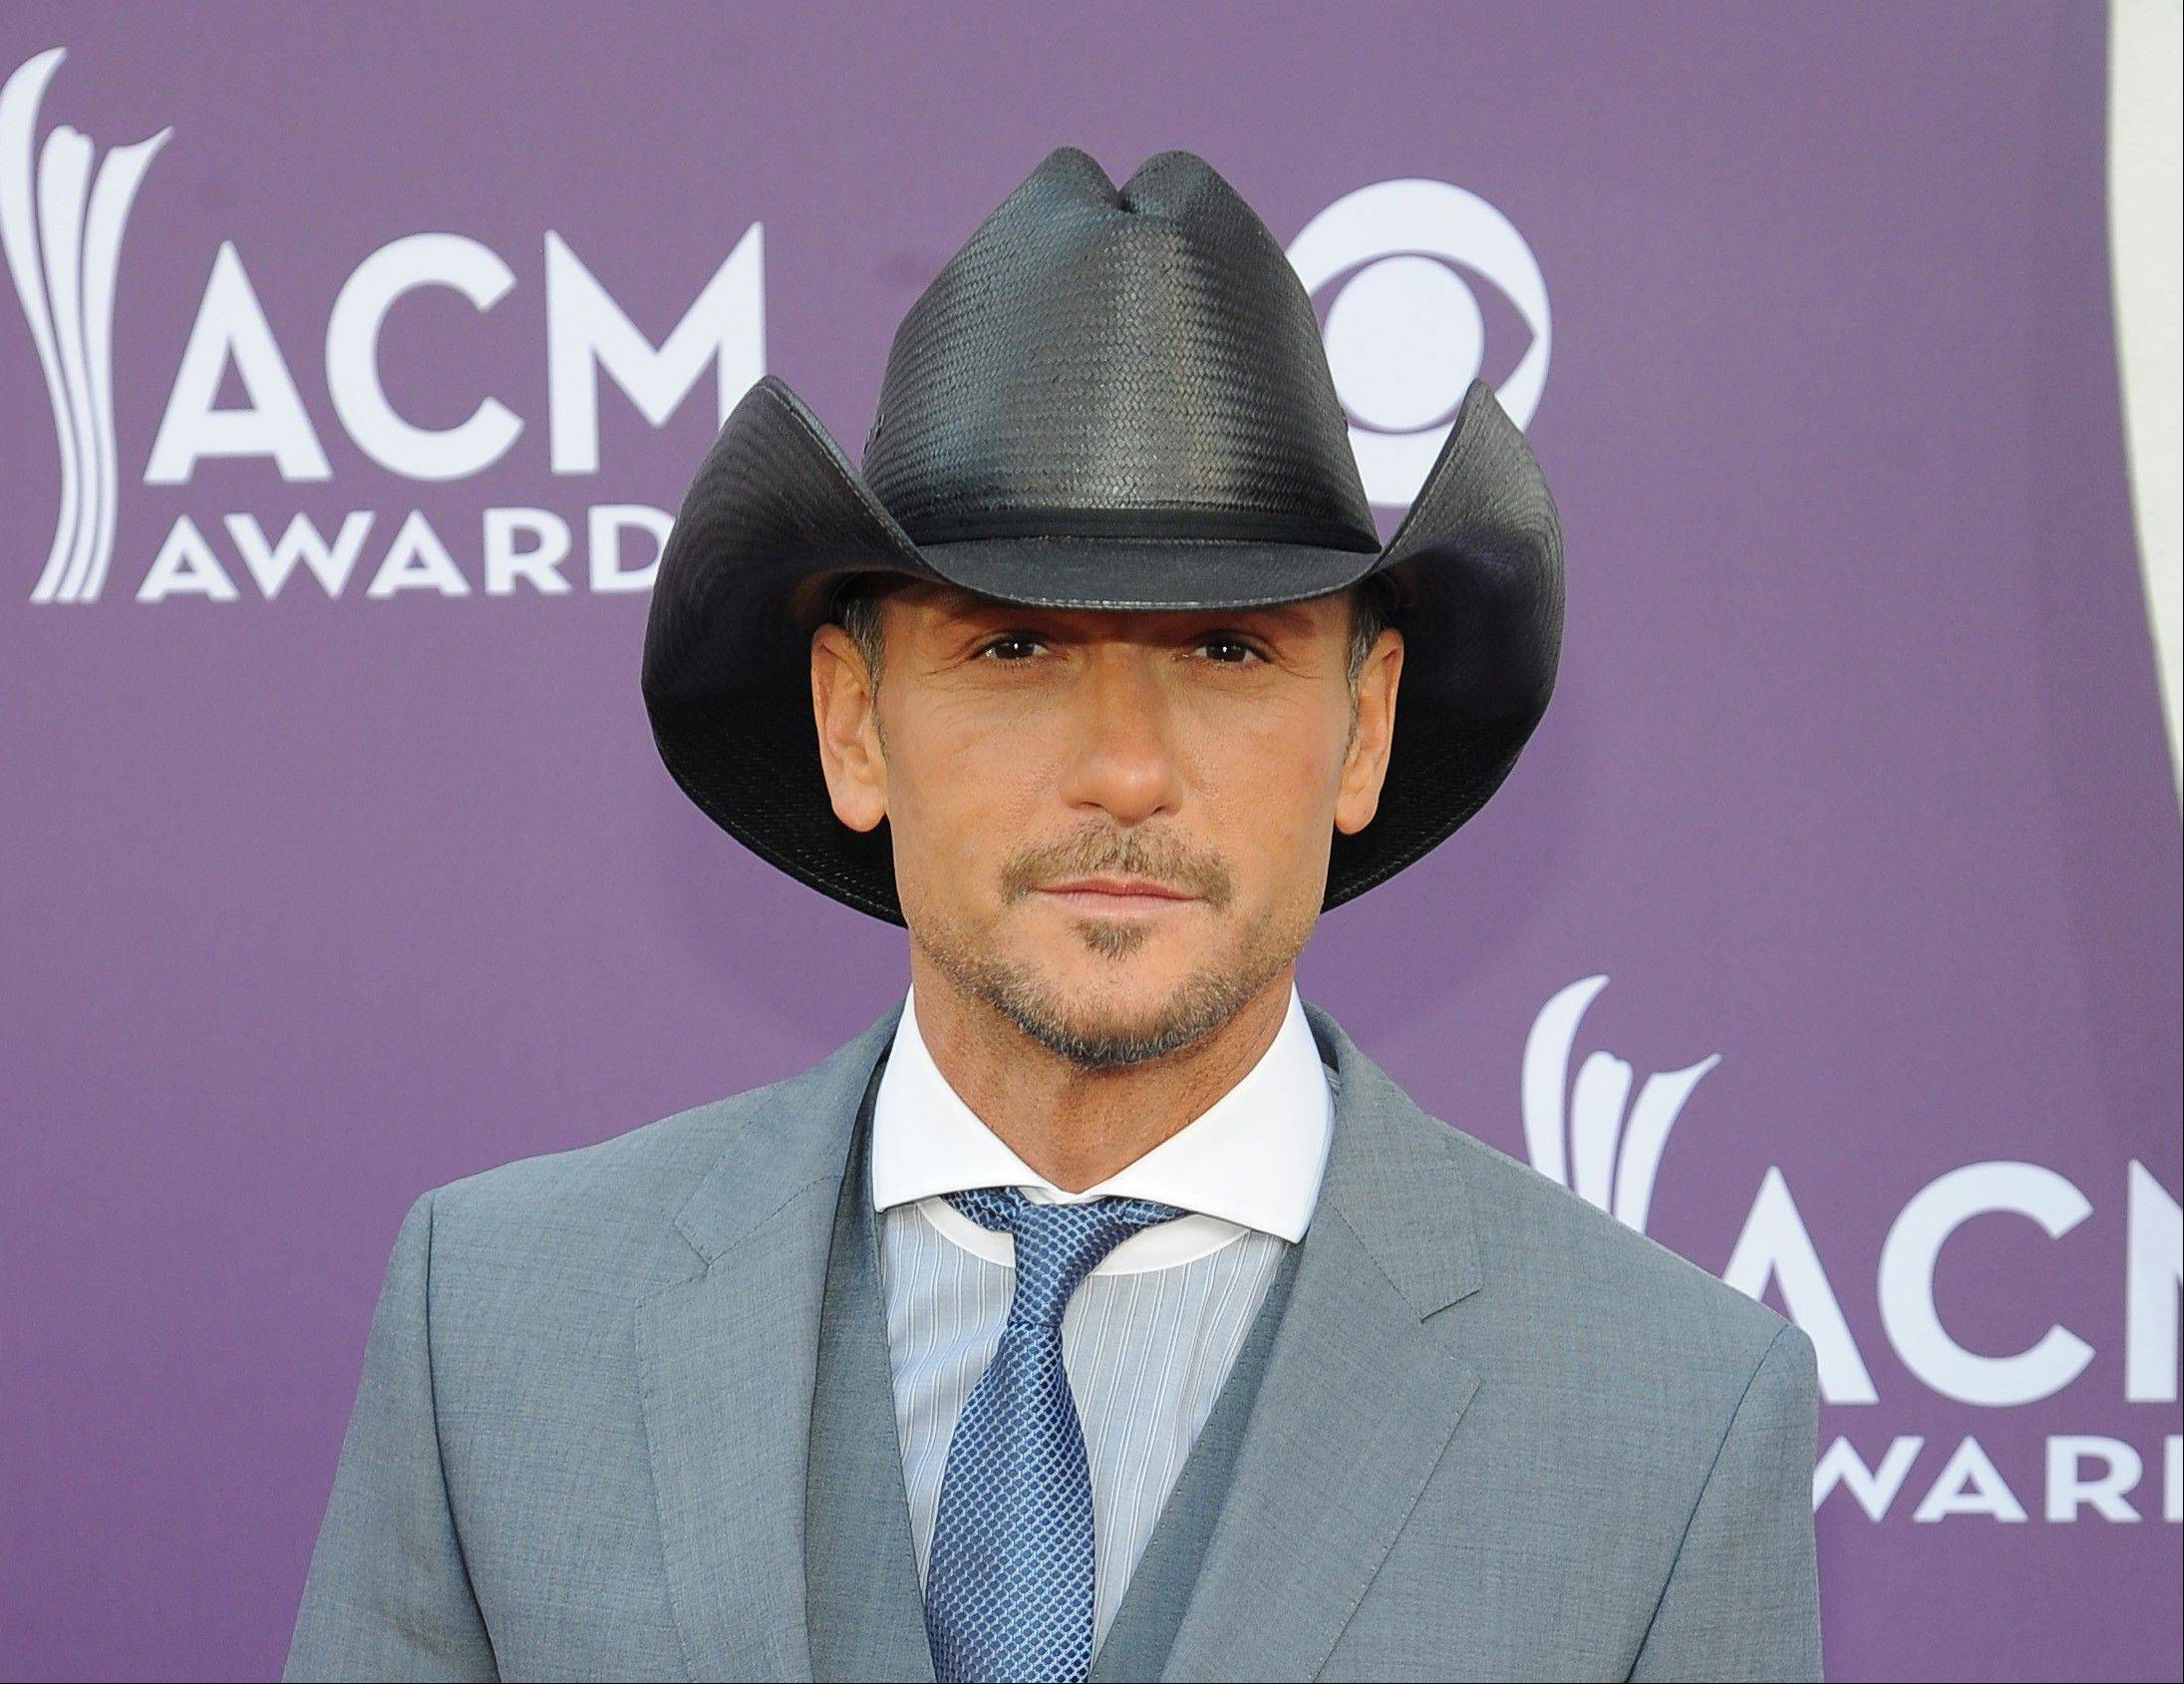 Curb Records has sued Tim McGraw and Big Machine Records in federal court, alleging copyright infringement and breach of contract.